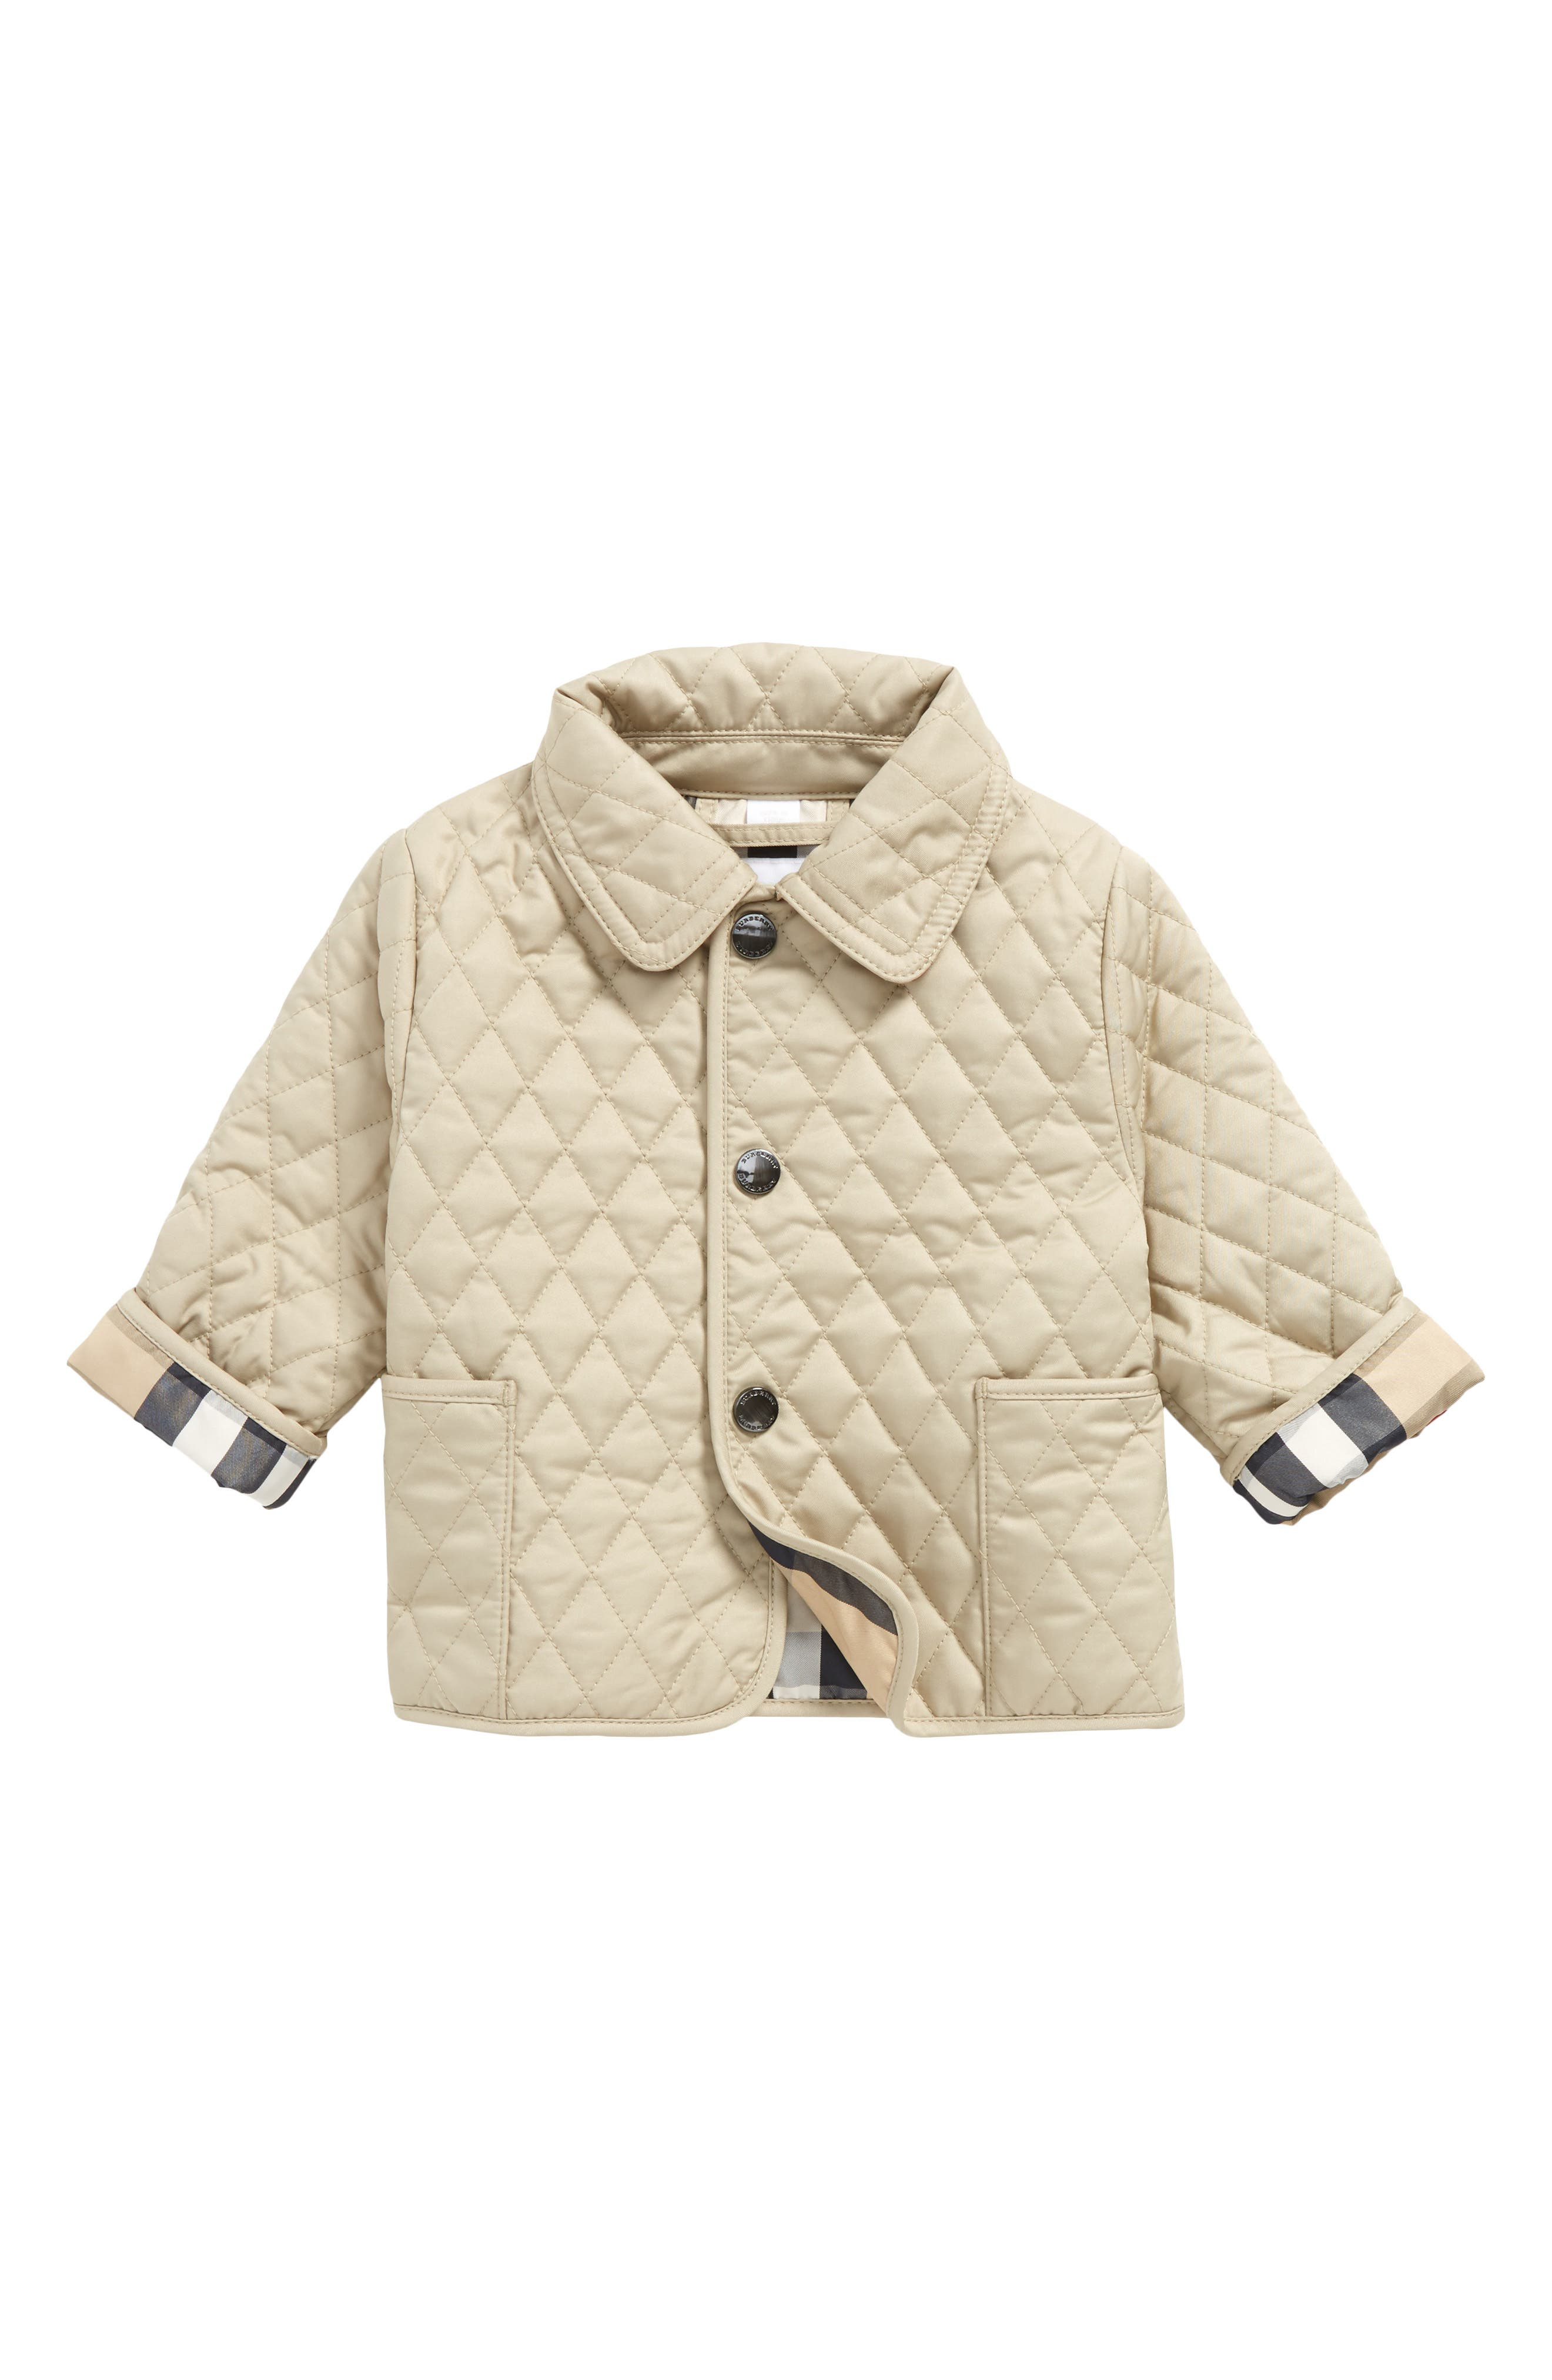 Alternate Image 1 Selected - Burberry Colin Quilted Jacket (Baby)